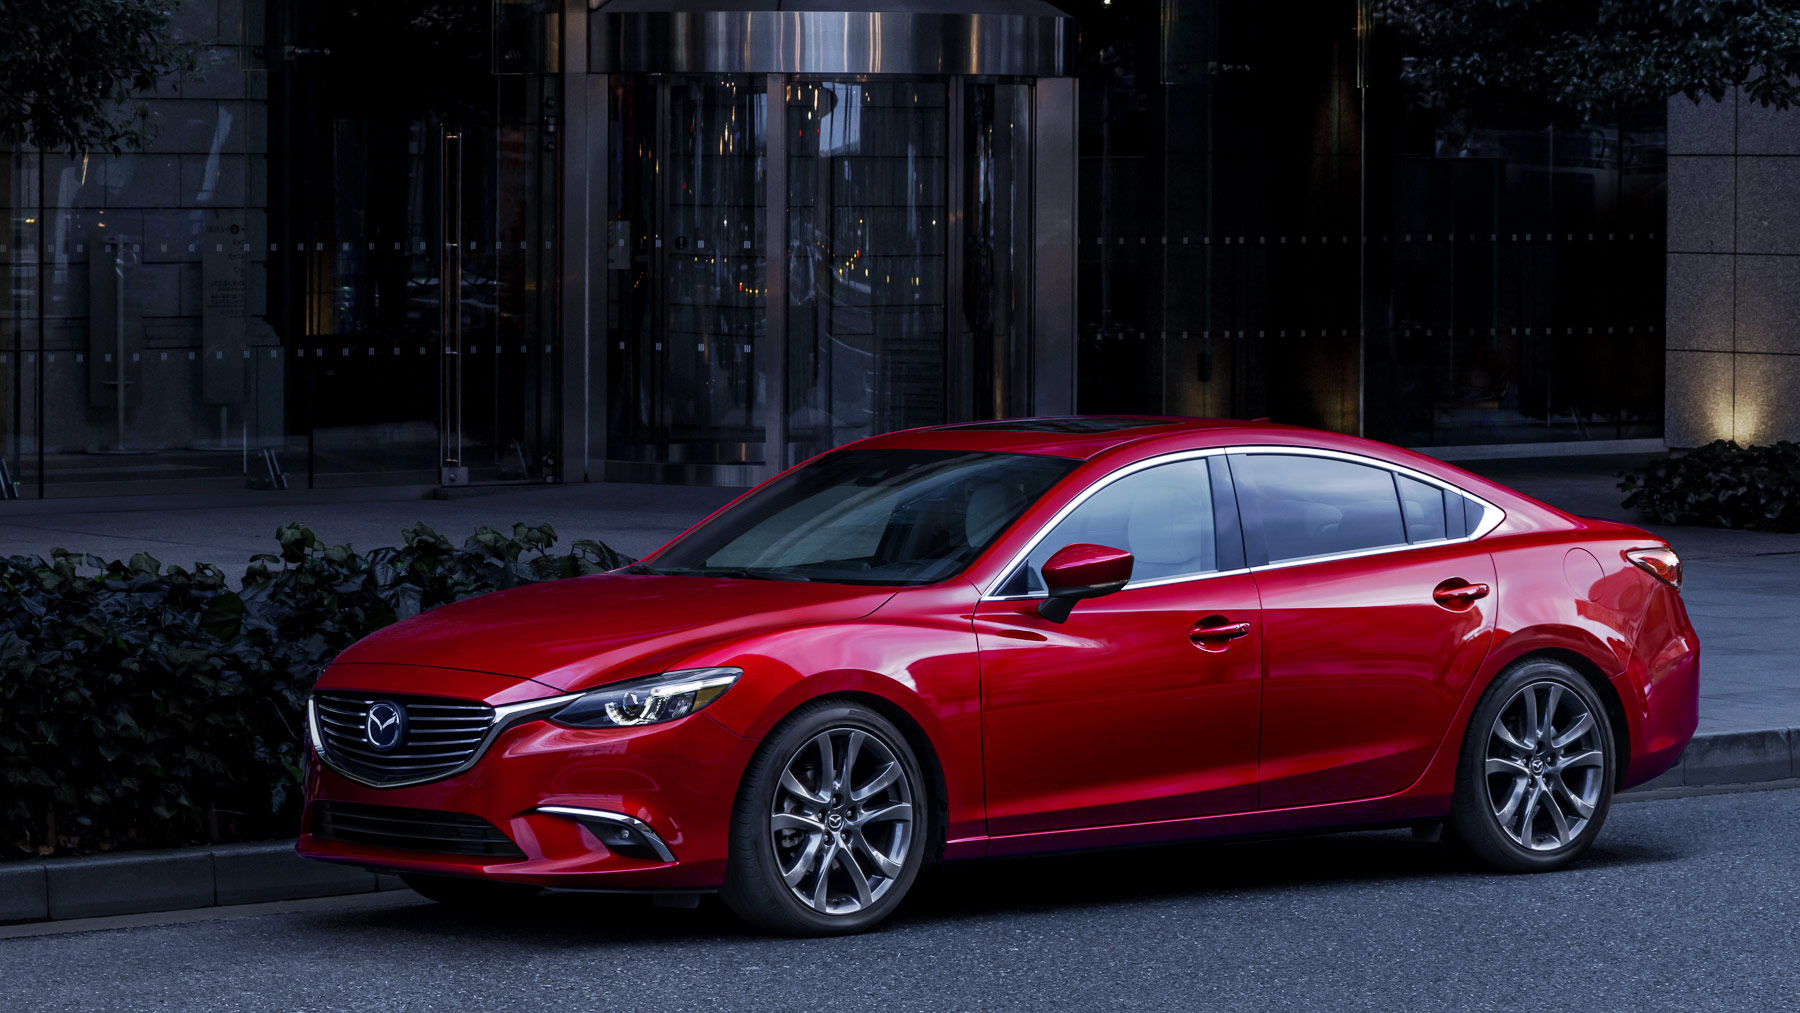 2017 Mazda 6 Side Exterior Red